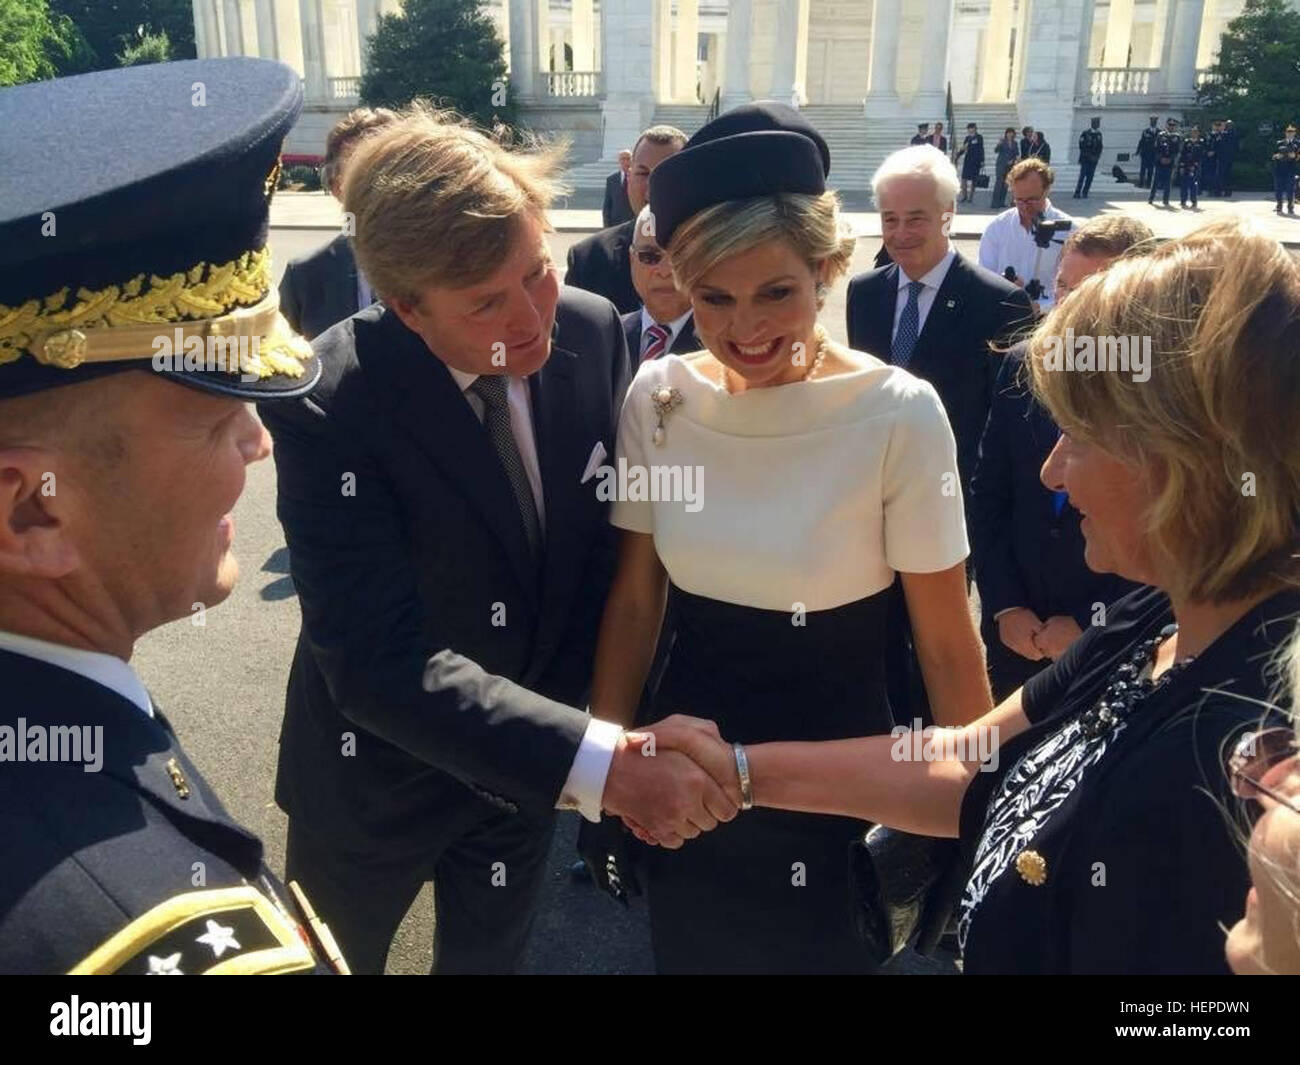 Monique Ryan, retired chief warrant officer 3, far right, greets King Willem-Alexander, with Queen Maxima during - Stock Image